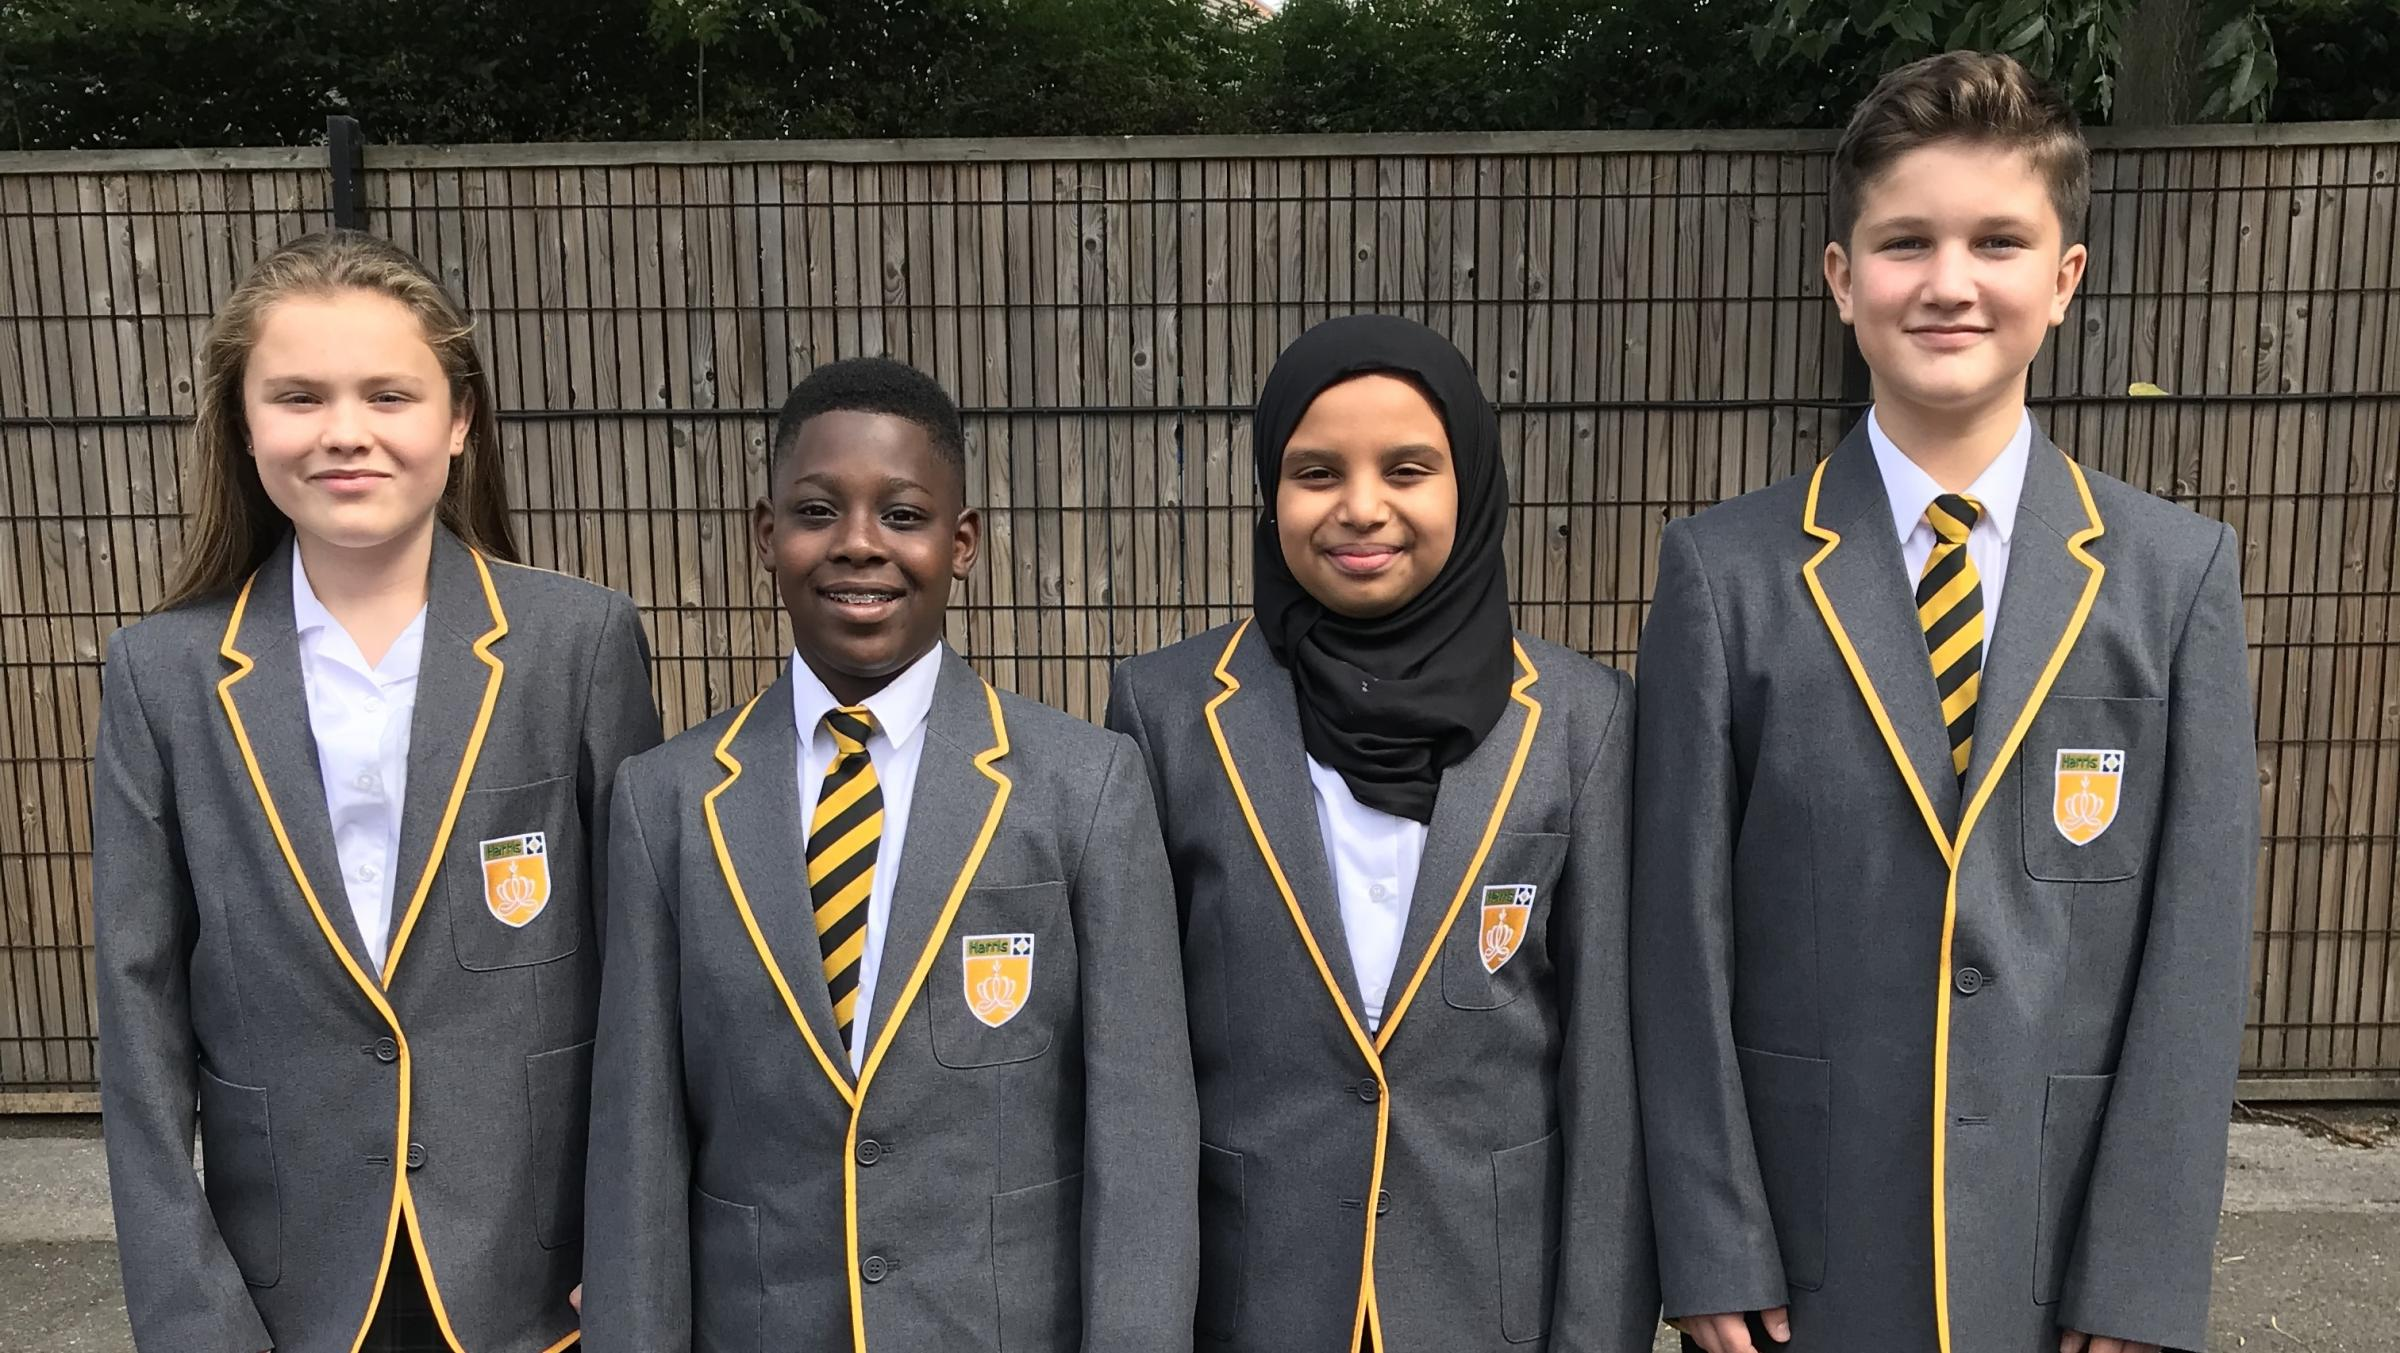 Harris Academy Wimbledon ushers in its first crop of students